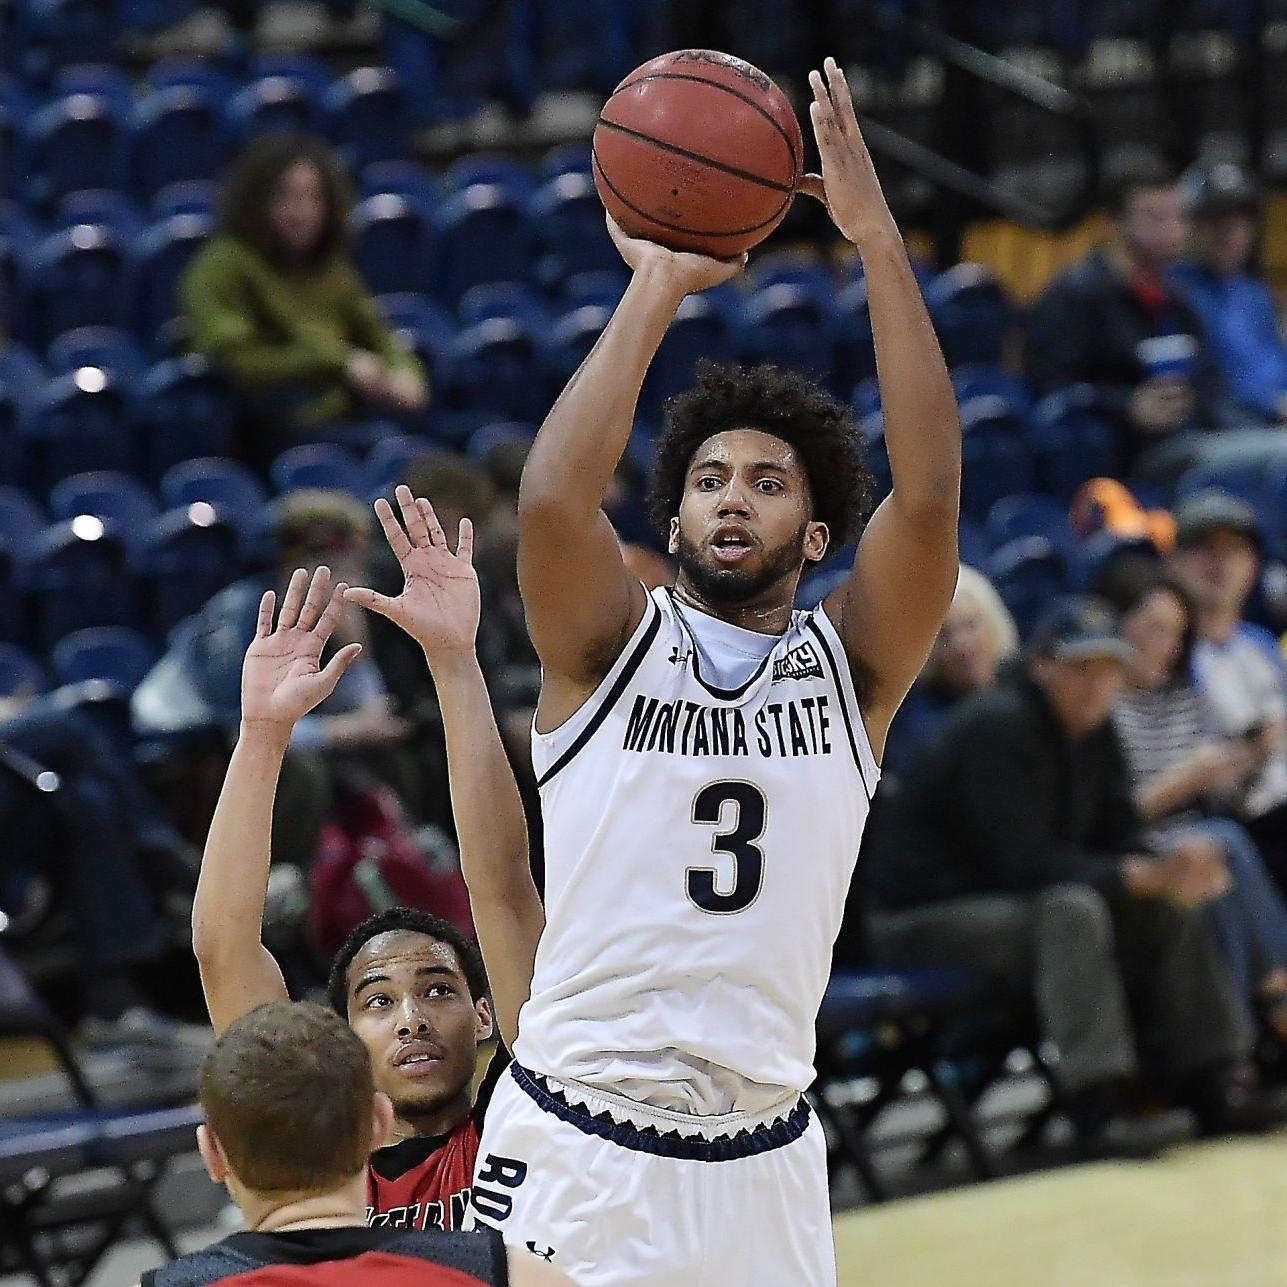 ab411540ad8 Montana State's Tyler Hall earns Summer League roster spot with Chicago  Bulls